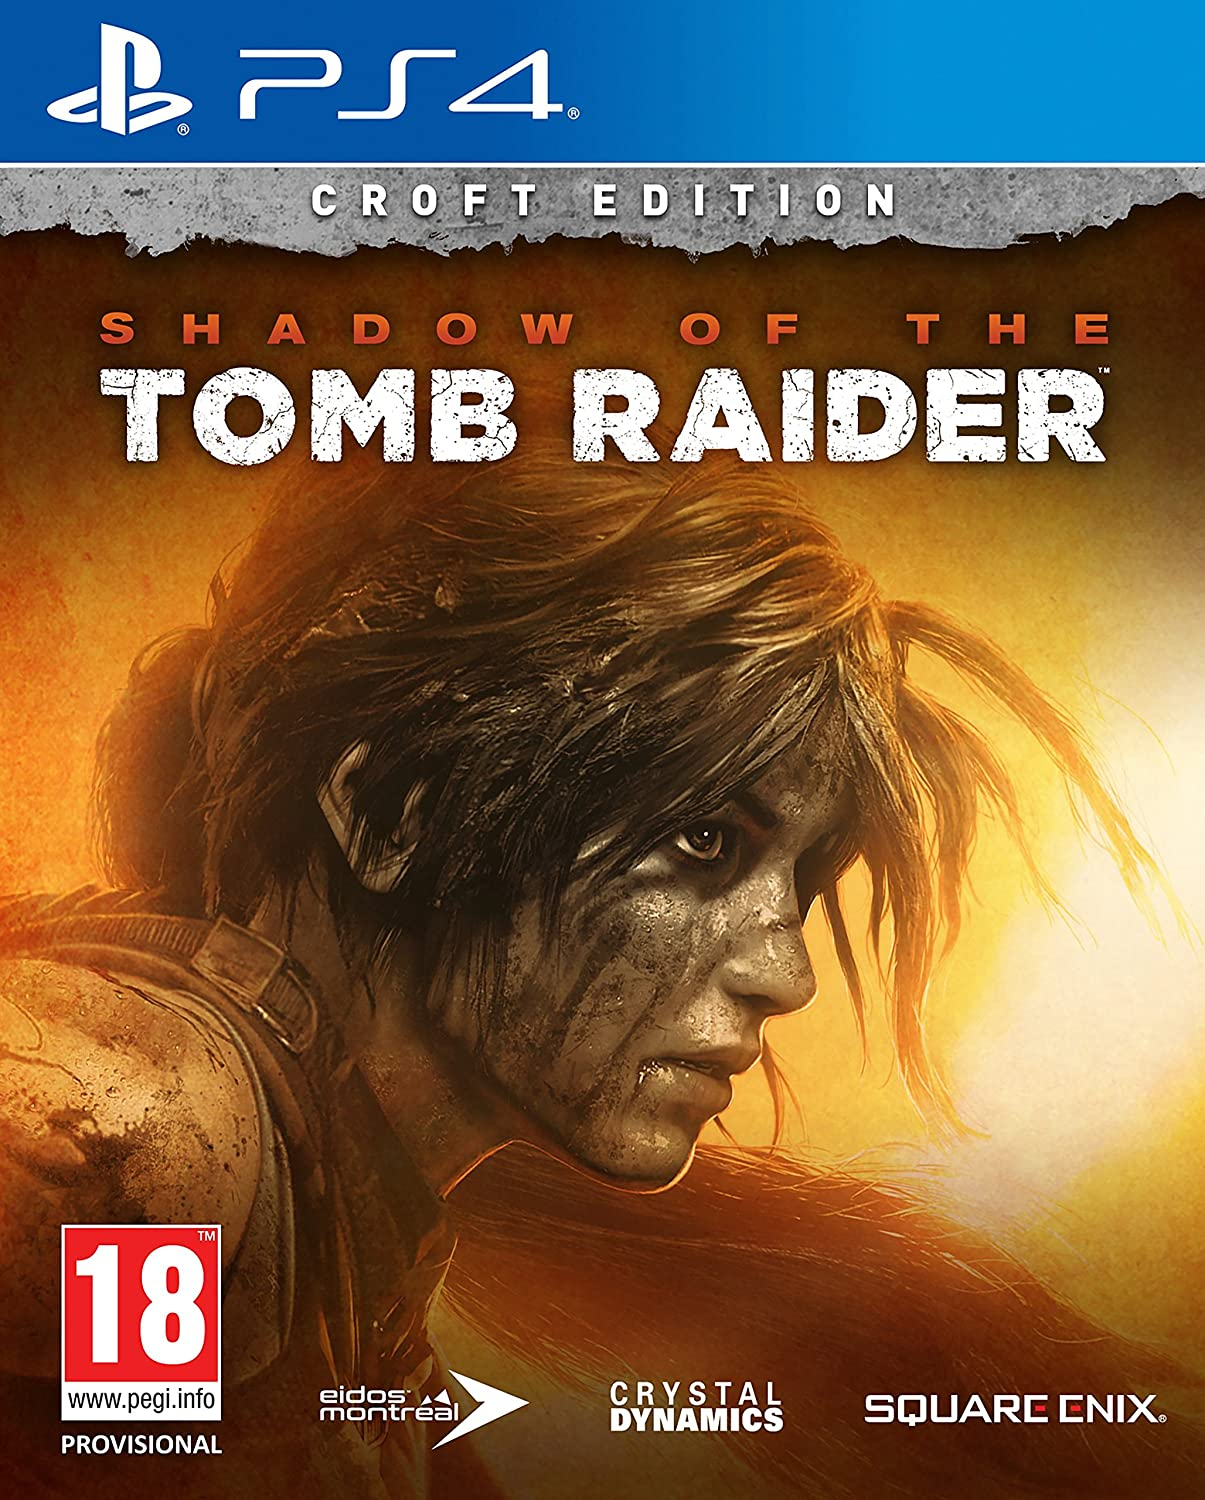 Shadow of the Tomb Raider Croft Edition (PS4): Amazon co uk